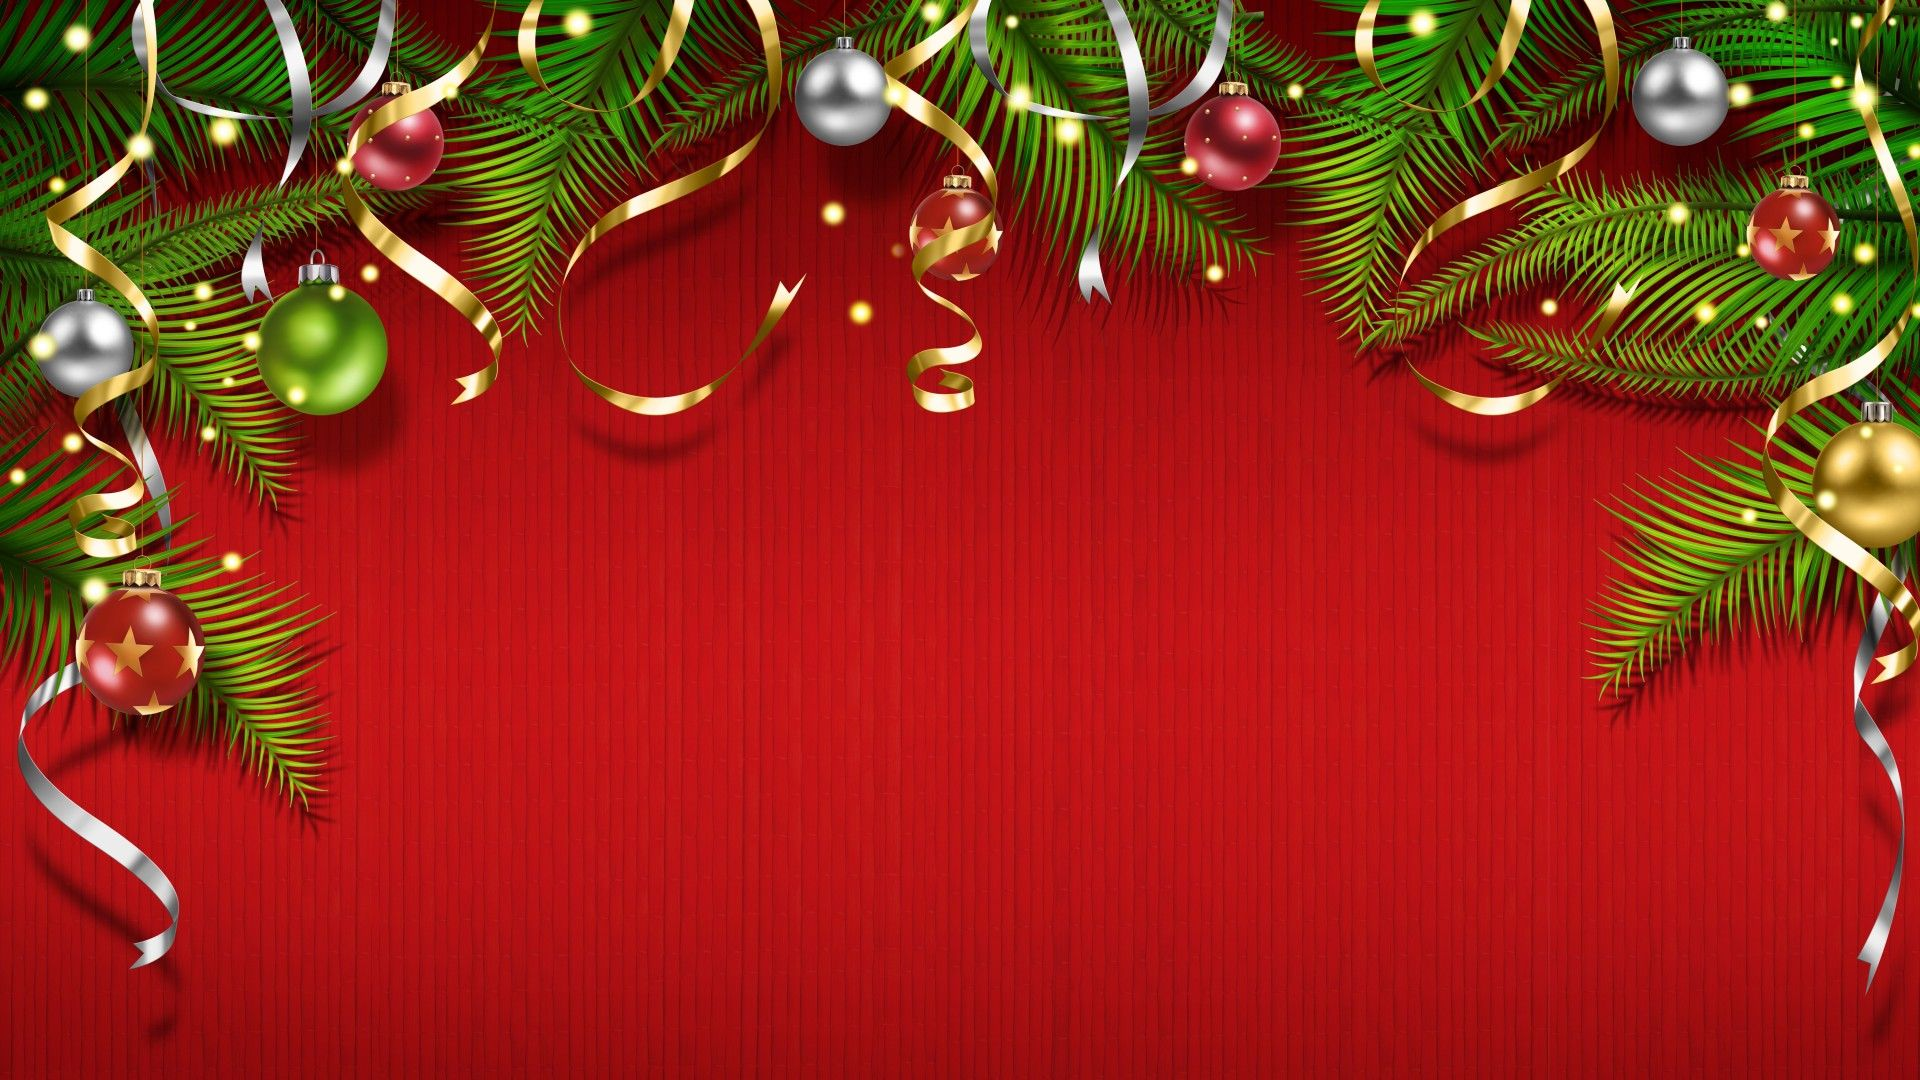 christmas wallpaper hd desktop Collection HD Wallpapers